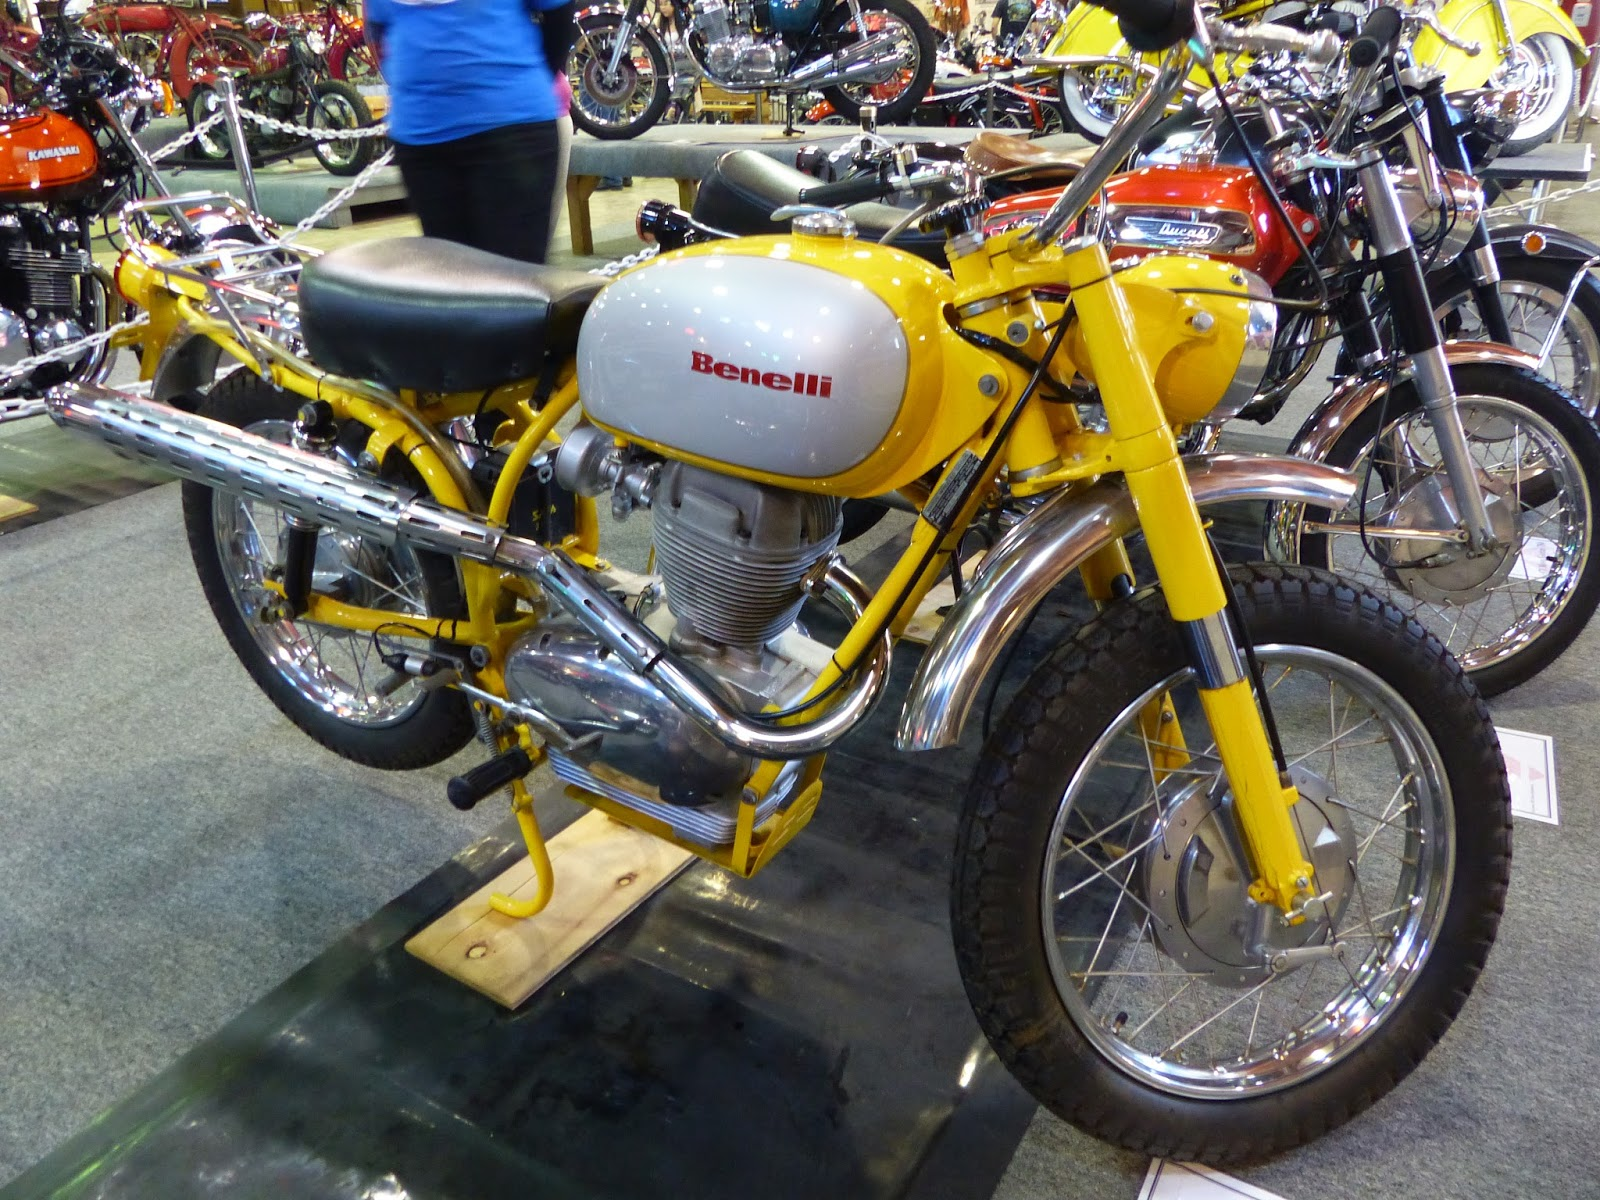 1967 Benelli Montgomery Wards 250 Scrambler On Display At The 2016 Marymount Motorcycle Week Tacoma Wa